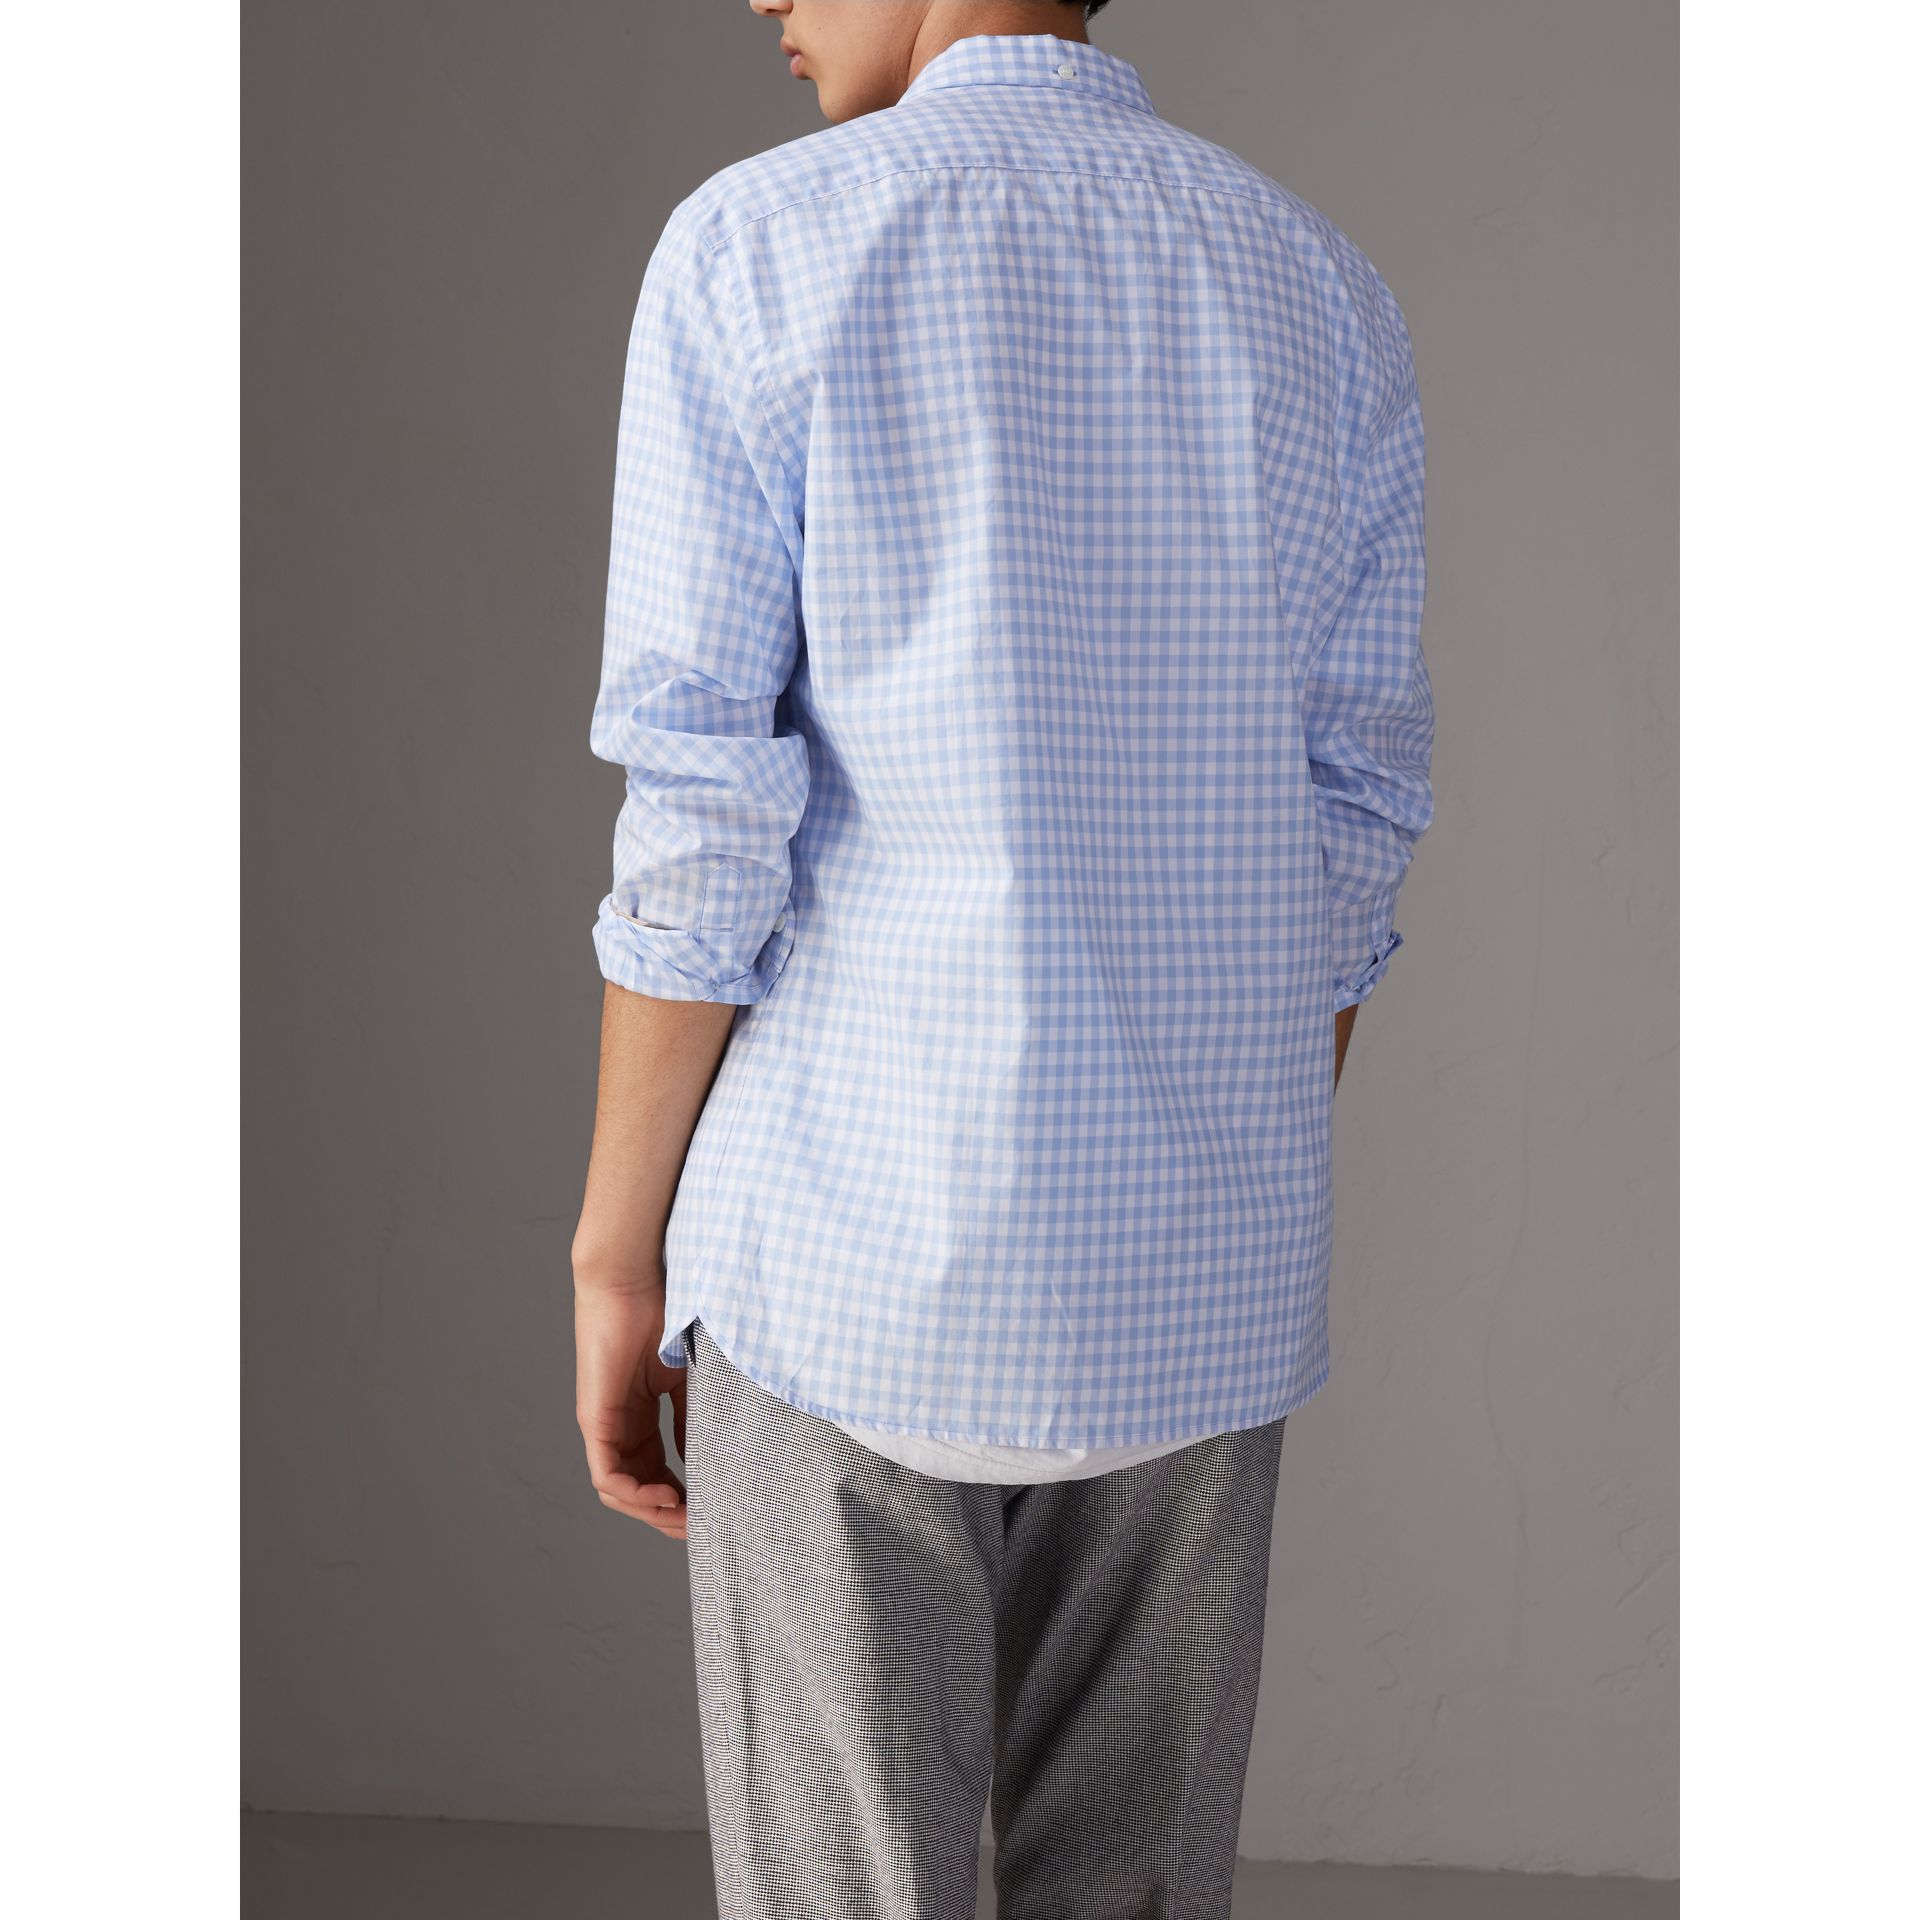 Button-down Collar Gingham Cotton Shirt in Pale Blue - Men | Burberry Australia - gallery image 2